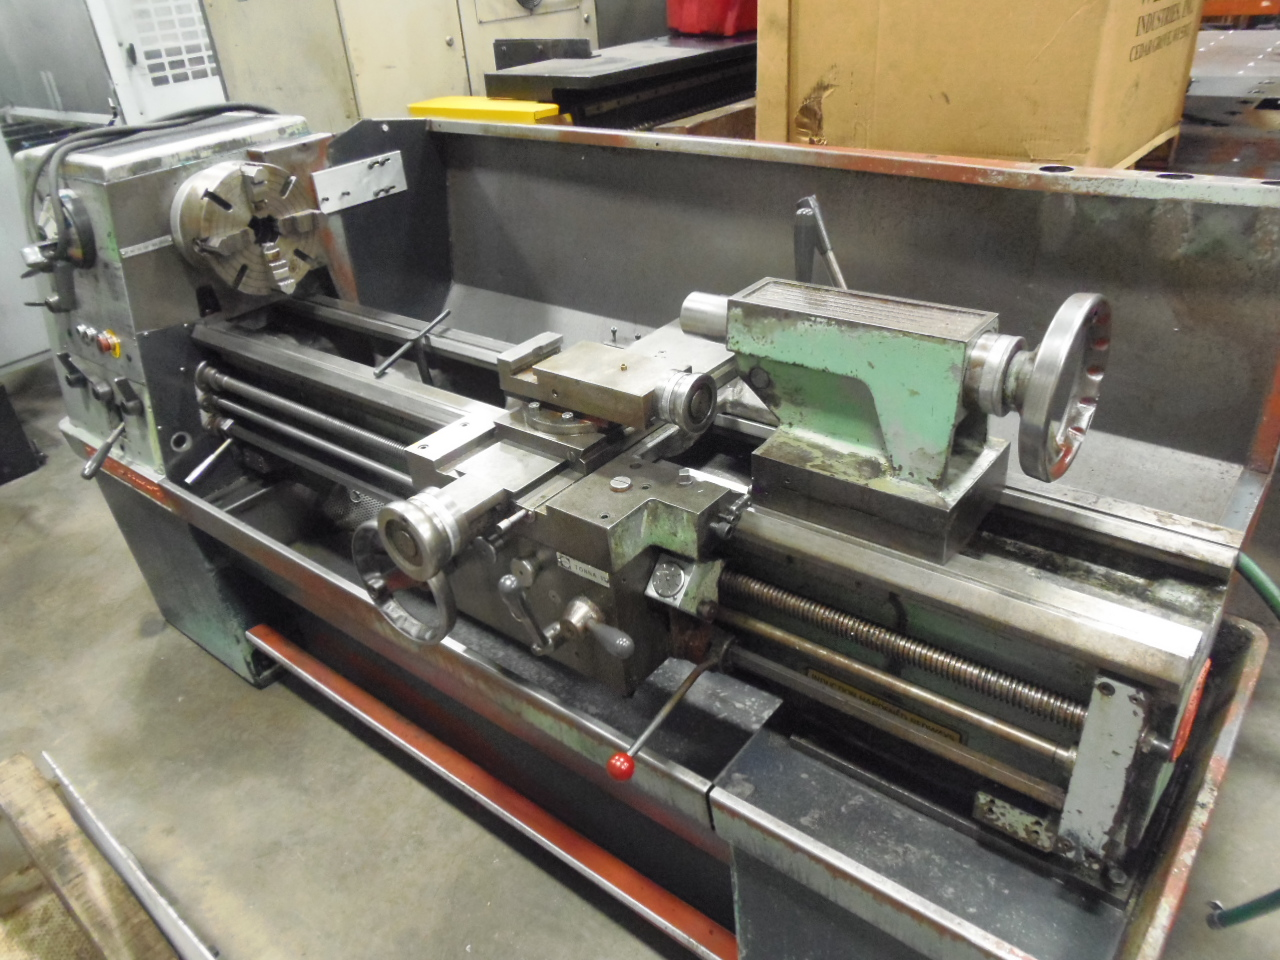 """CLAUSING COLCHESTER 15 ENGINE LATHE, 15"""" X 50"""" CENTERS, 2000 RPM, INCH/METRIC THREADING, 10"""" 4 JAW CHUCK,"""